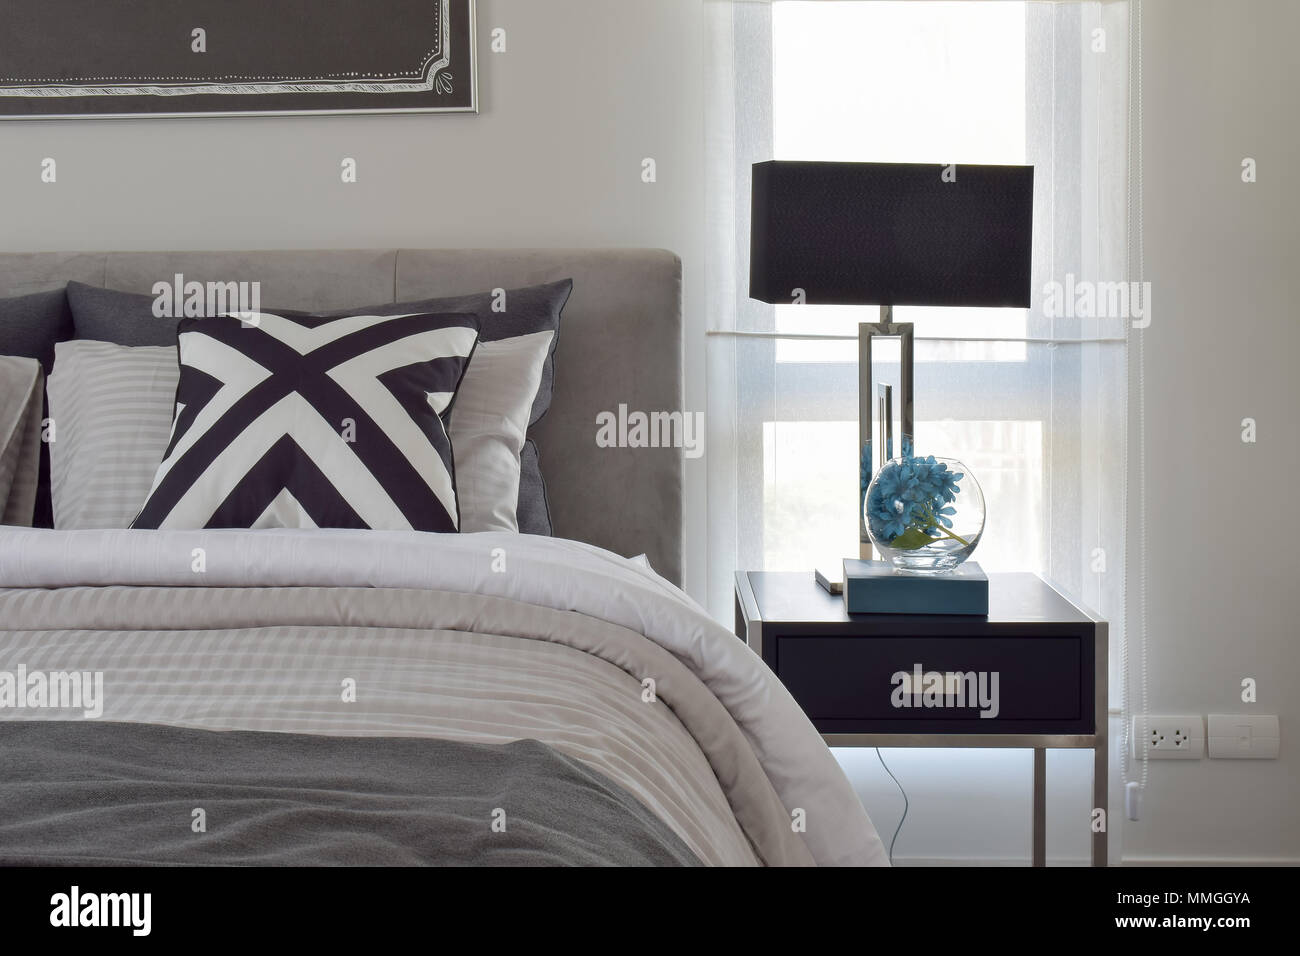 Picture of: Black Shade Reading Lamp On Bedside Table With Modern Classic Style Bedding Stock Photo Alamy